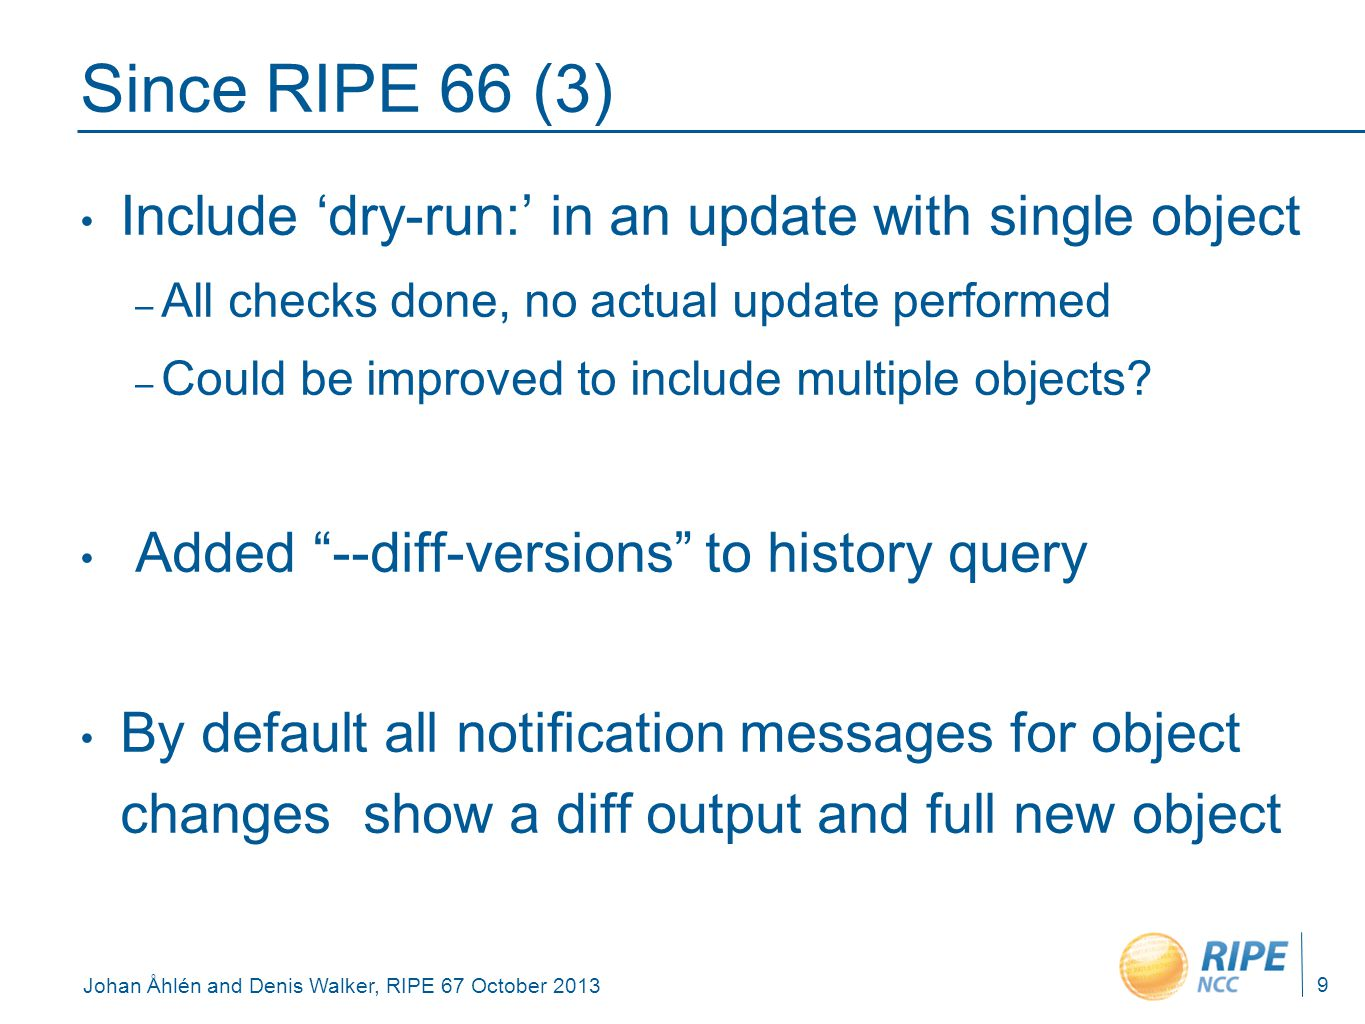 Johan Åhlén and Denis Walker, RIPE 67 October 2013 Since RIPE 66 (3) Include 'dry-run:' in an update with single object – All checks done, no actual u